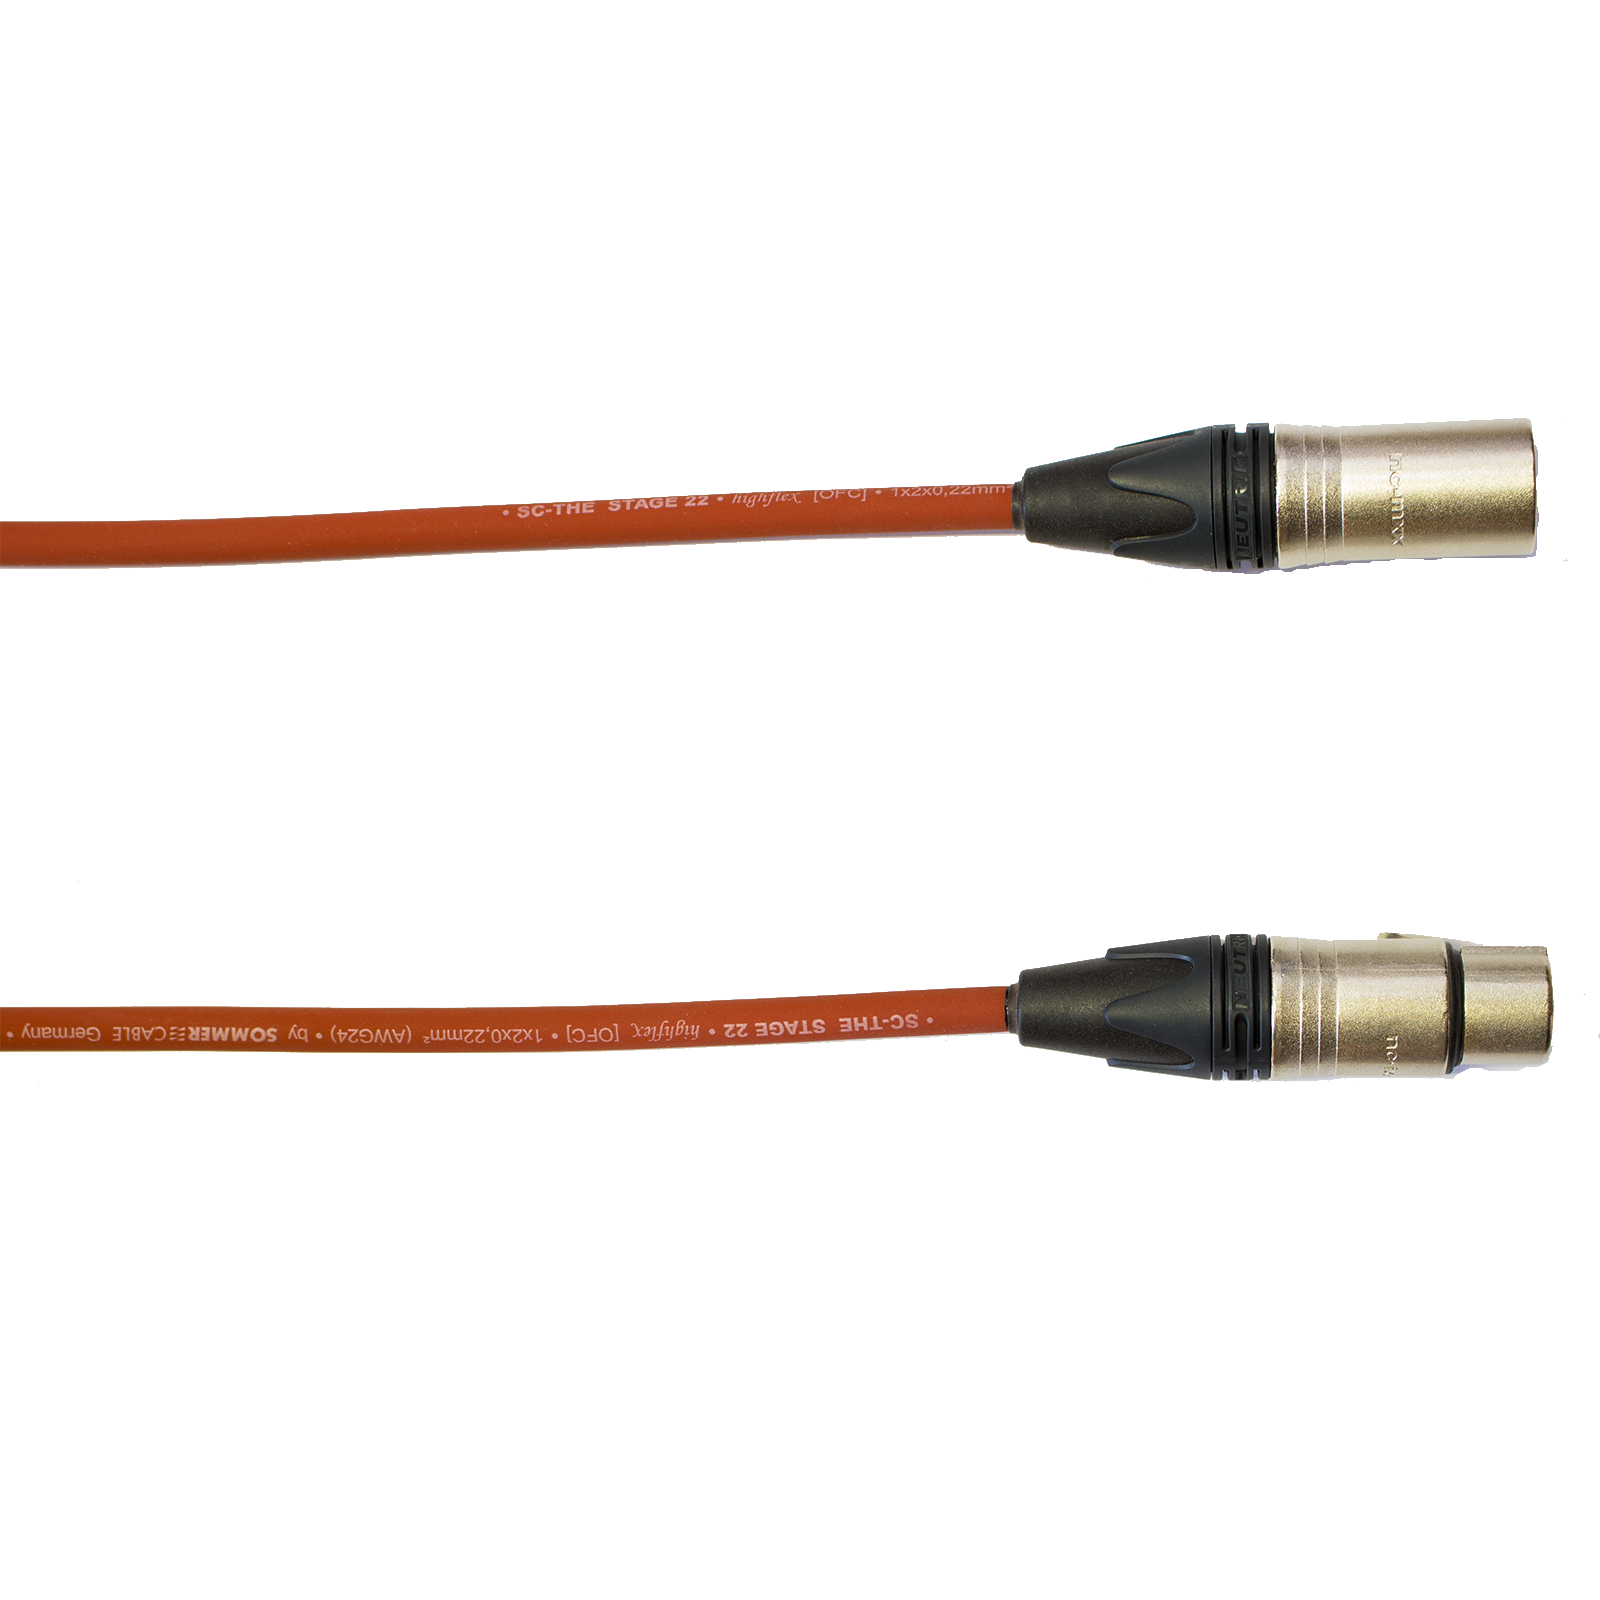 Audiokabel XLR konektor Neutrik male/female  50 m, Sommer, červený